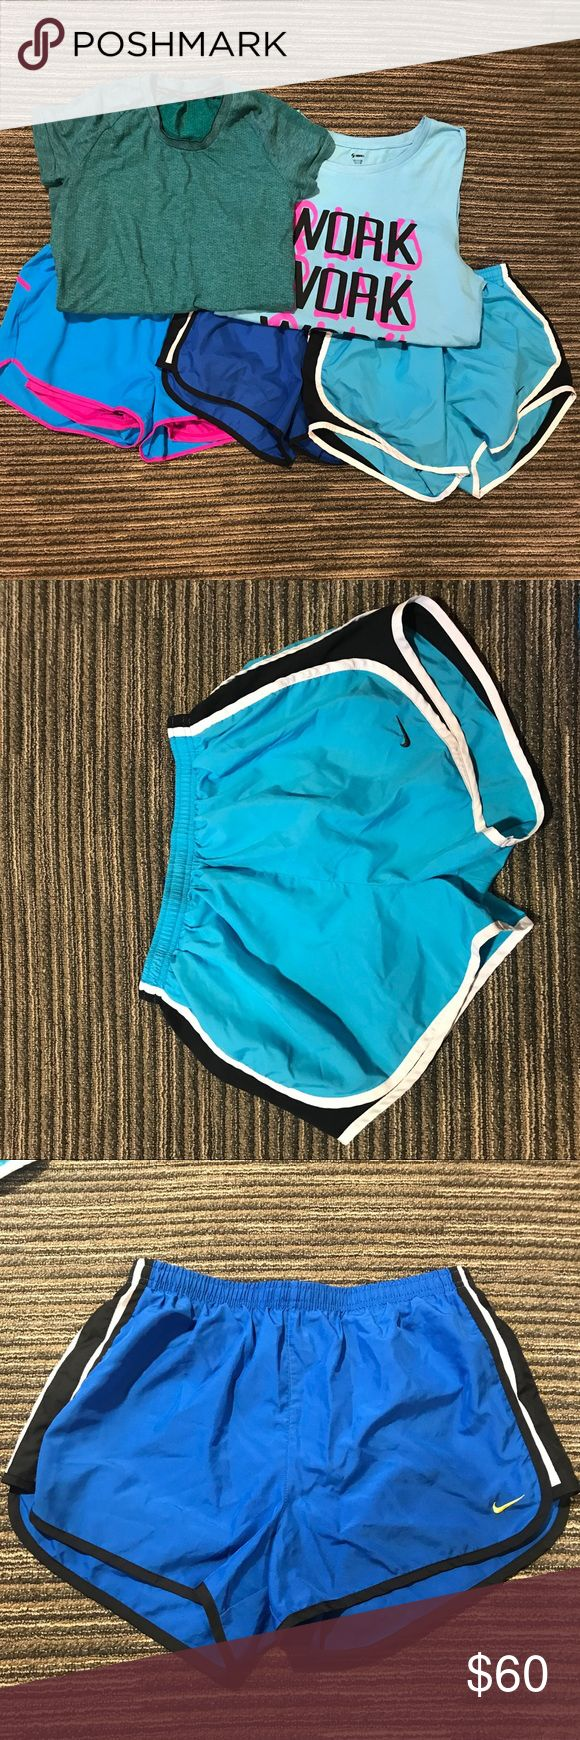 Size medium, blue athletic/workout bundle Athletic workout bundle  ⚜️Two pairs of blue Nike shorts ⚜️a pair of blue and pink new balance shorts ⚜️a blue Soffee graphic tee tank  ⚜️a greenish/blue adiddas short sleeve shirt  Only flaw is in the dark blue nike shorts there is pilling in the liner   Bundle and save! Prices are always negotiable 💜💙 Nike Shorts